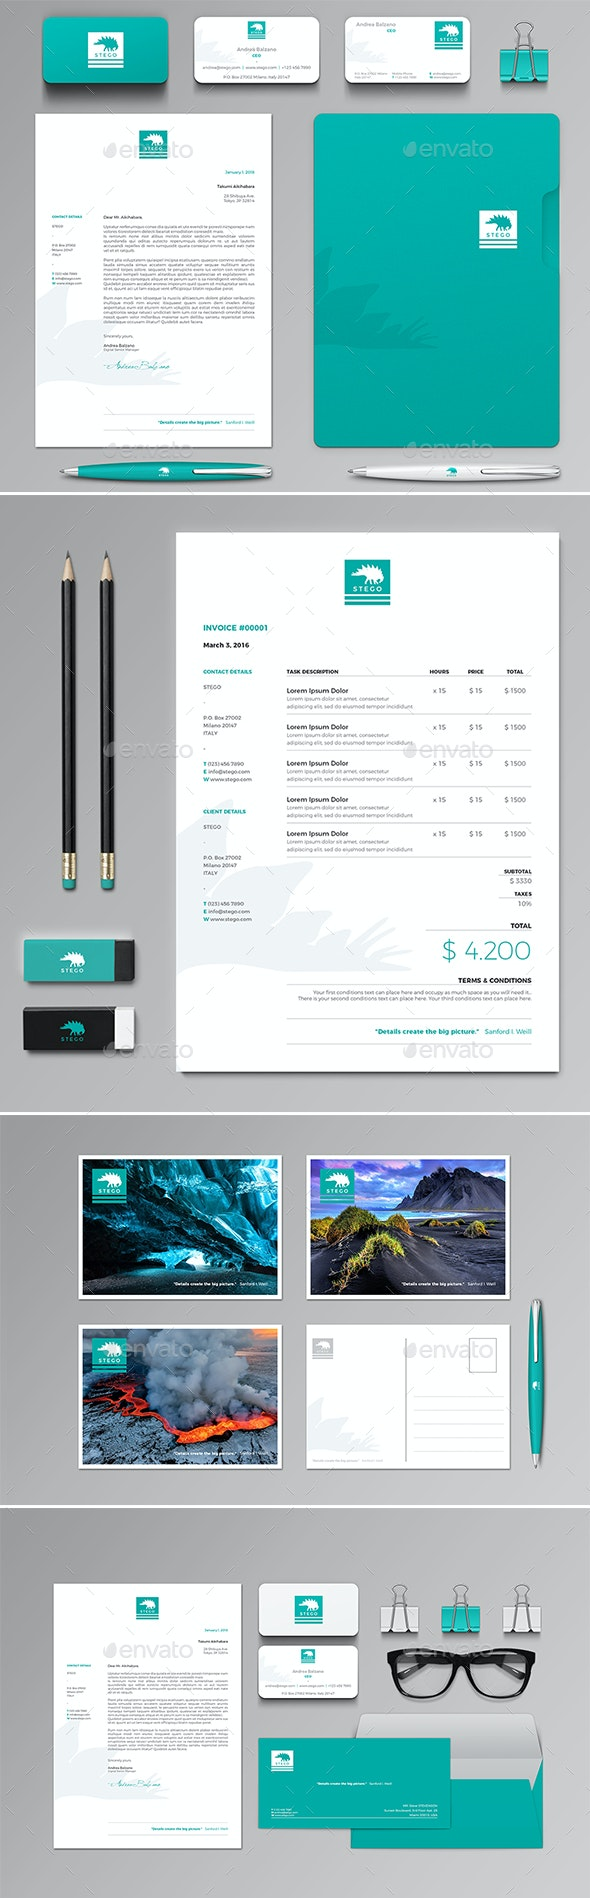 Stego Stationery Set & Invoice Template - Proposals & Invoices Stationery